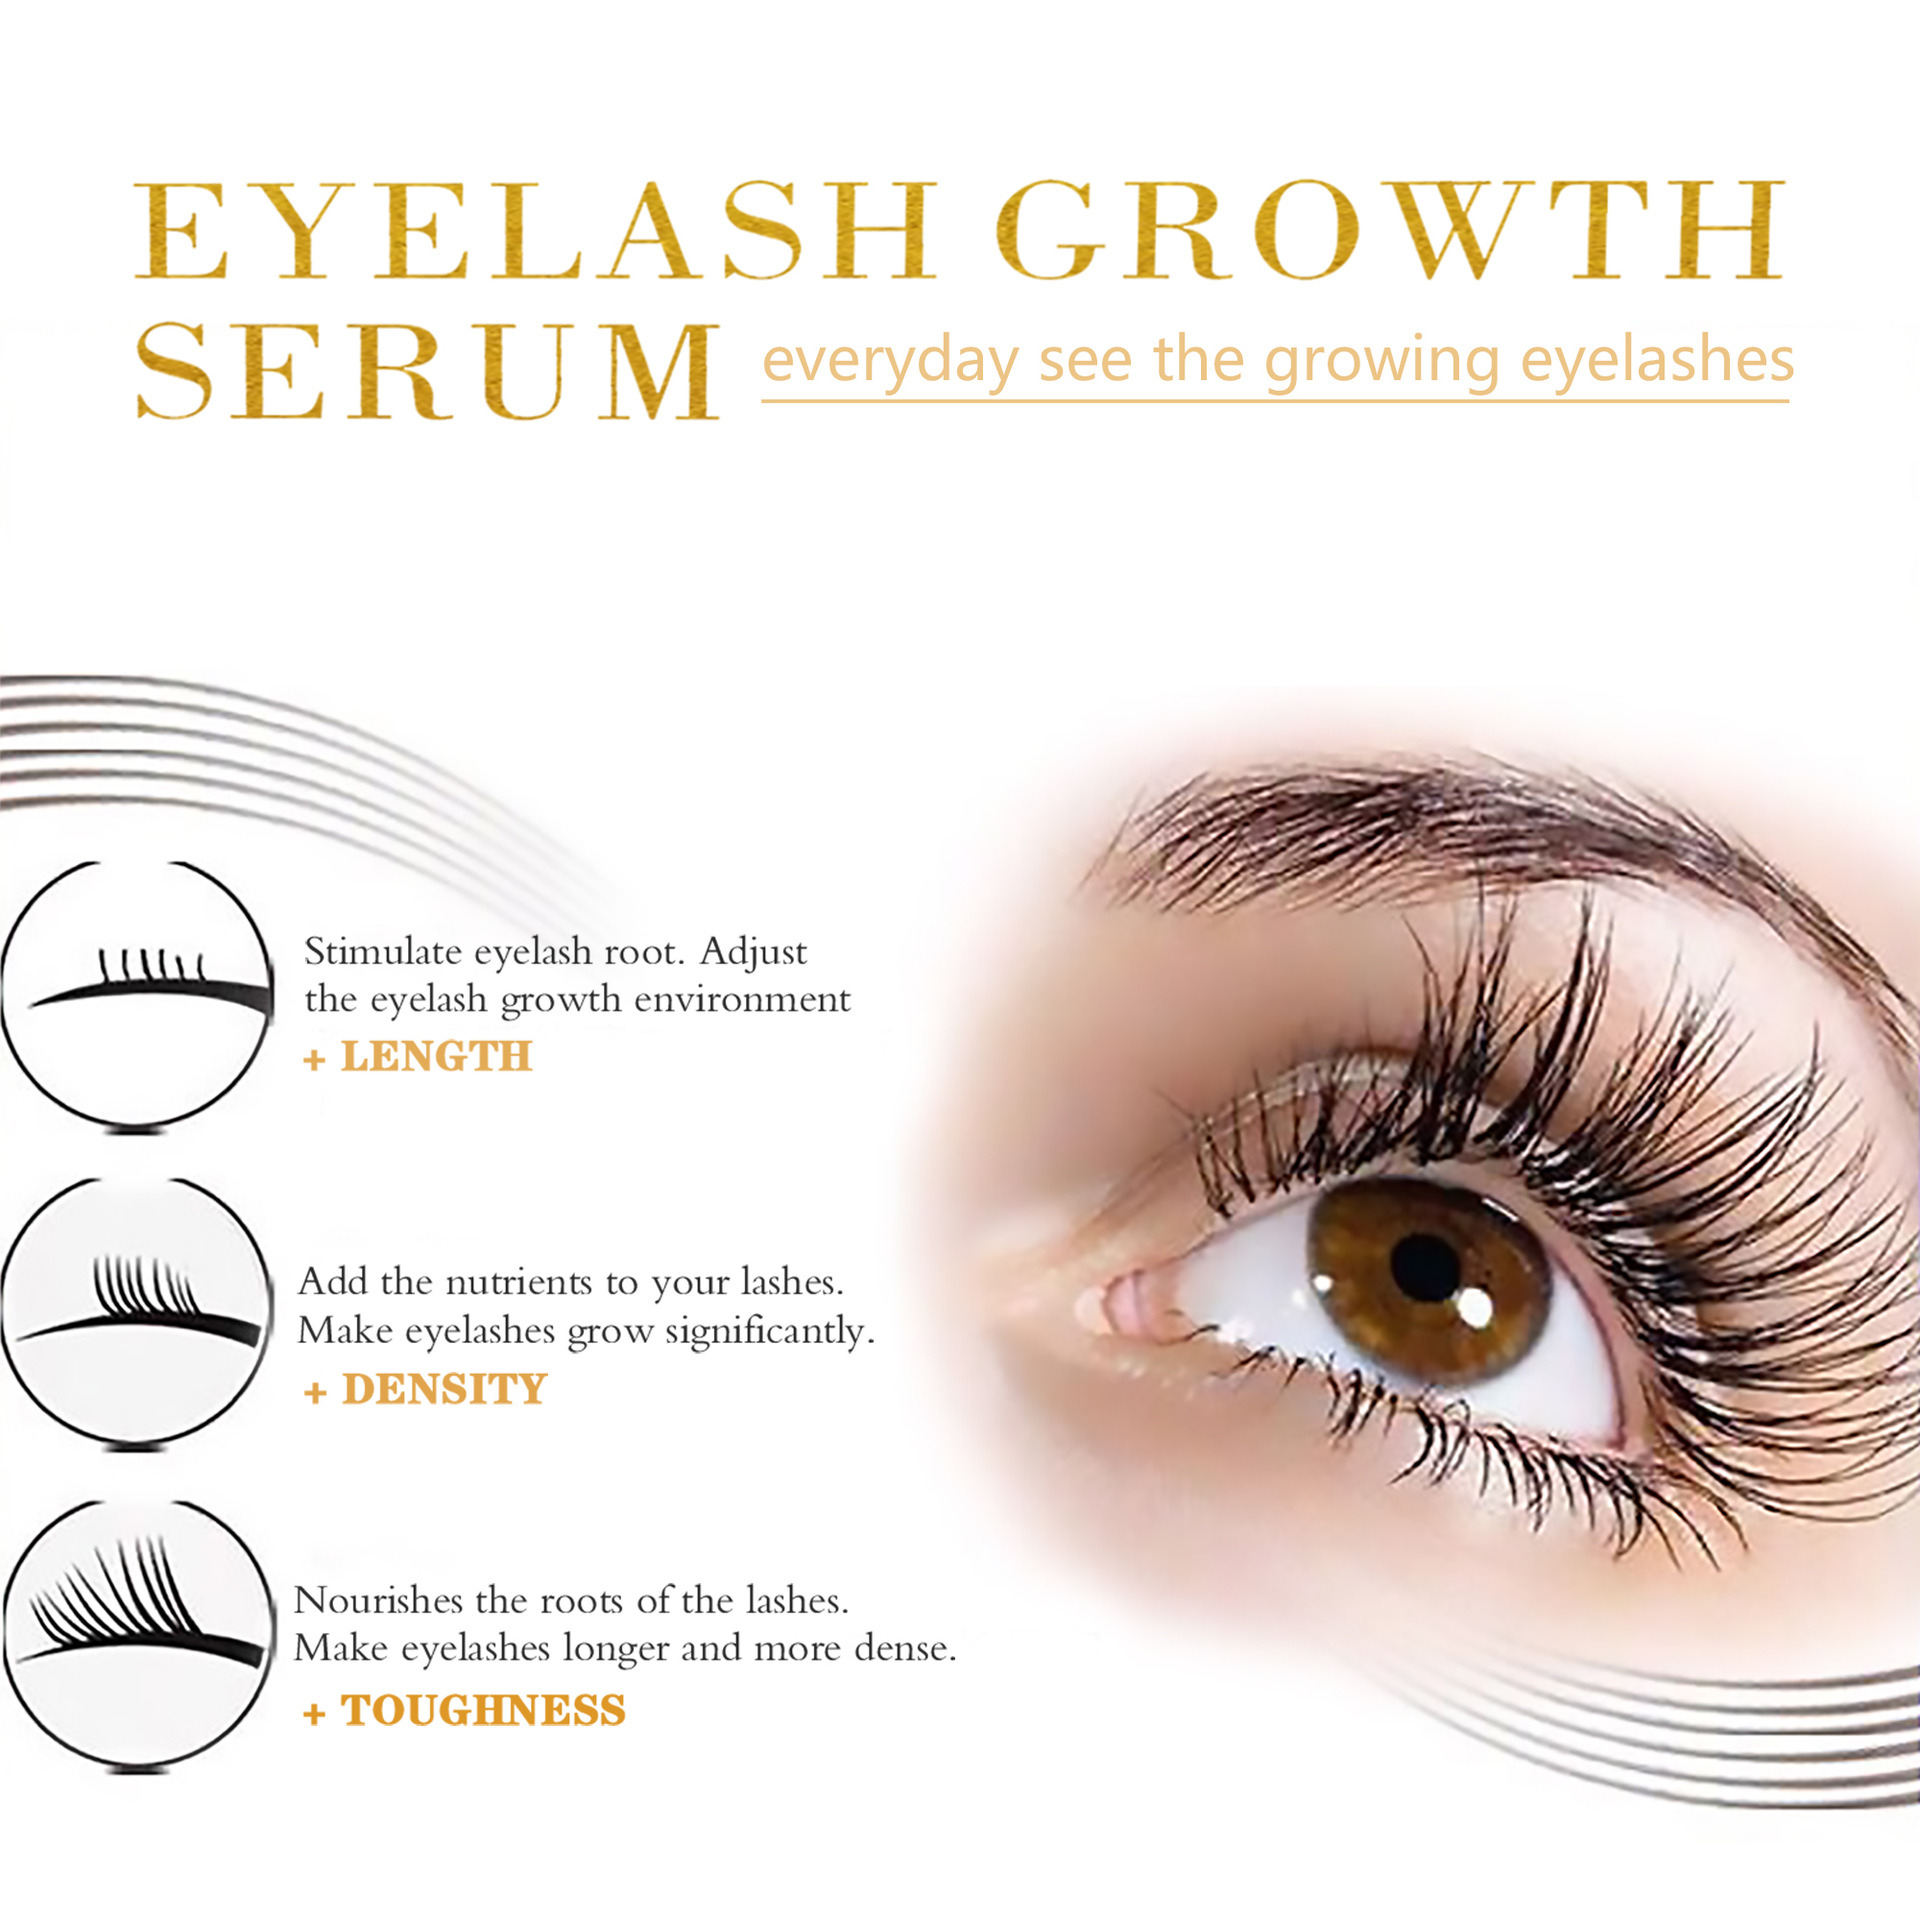 Eyebrow Eyelash Growth Serum Private Label Eyelash Serum